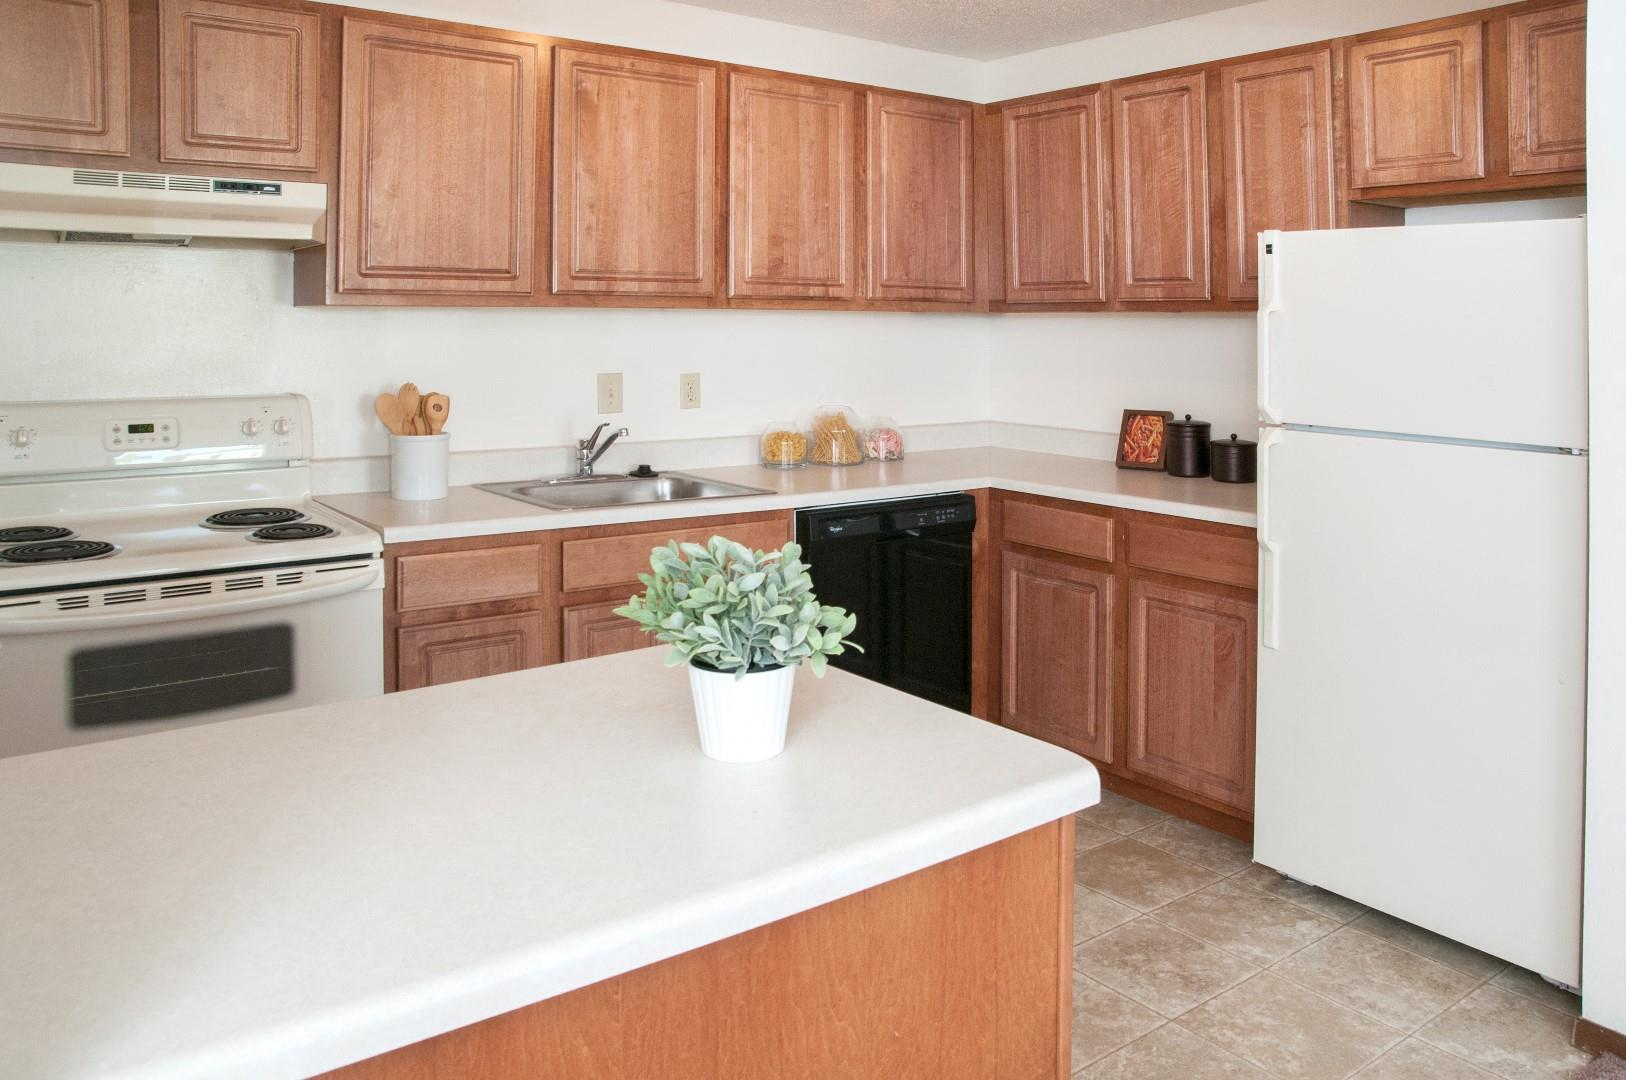 All Electric Kitchen at Hillsborough Apartments, Roseville, MN